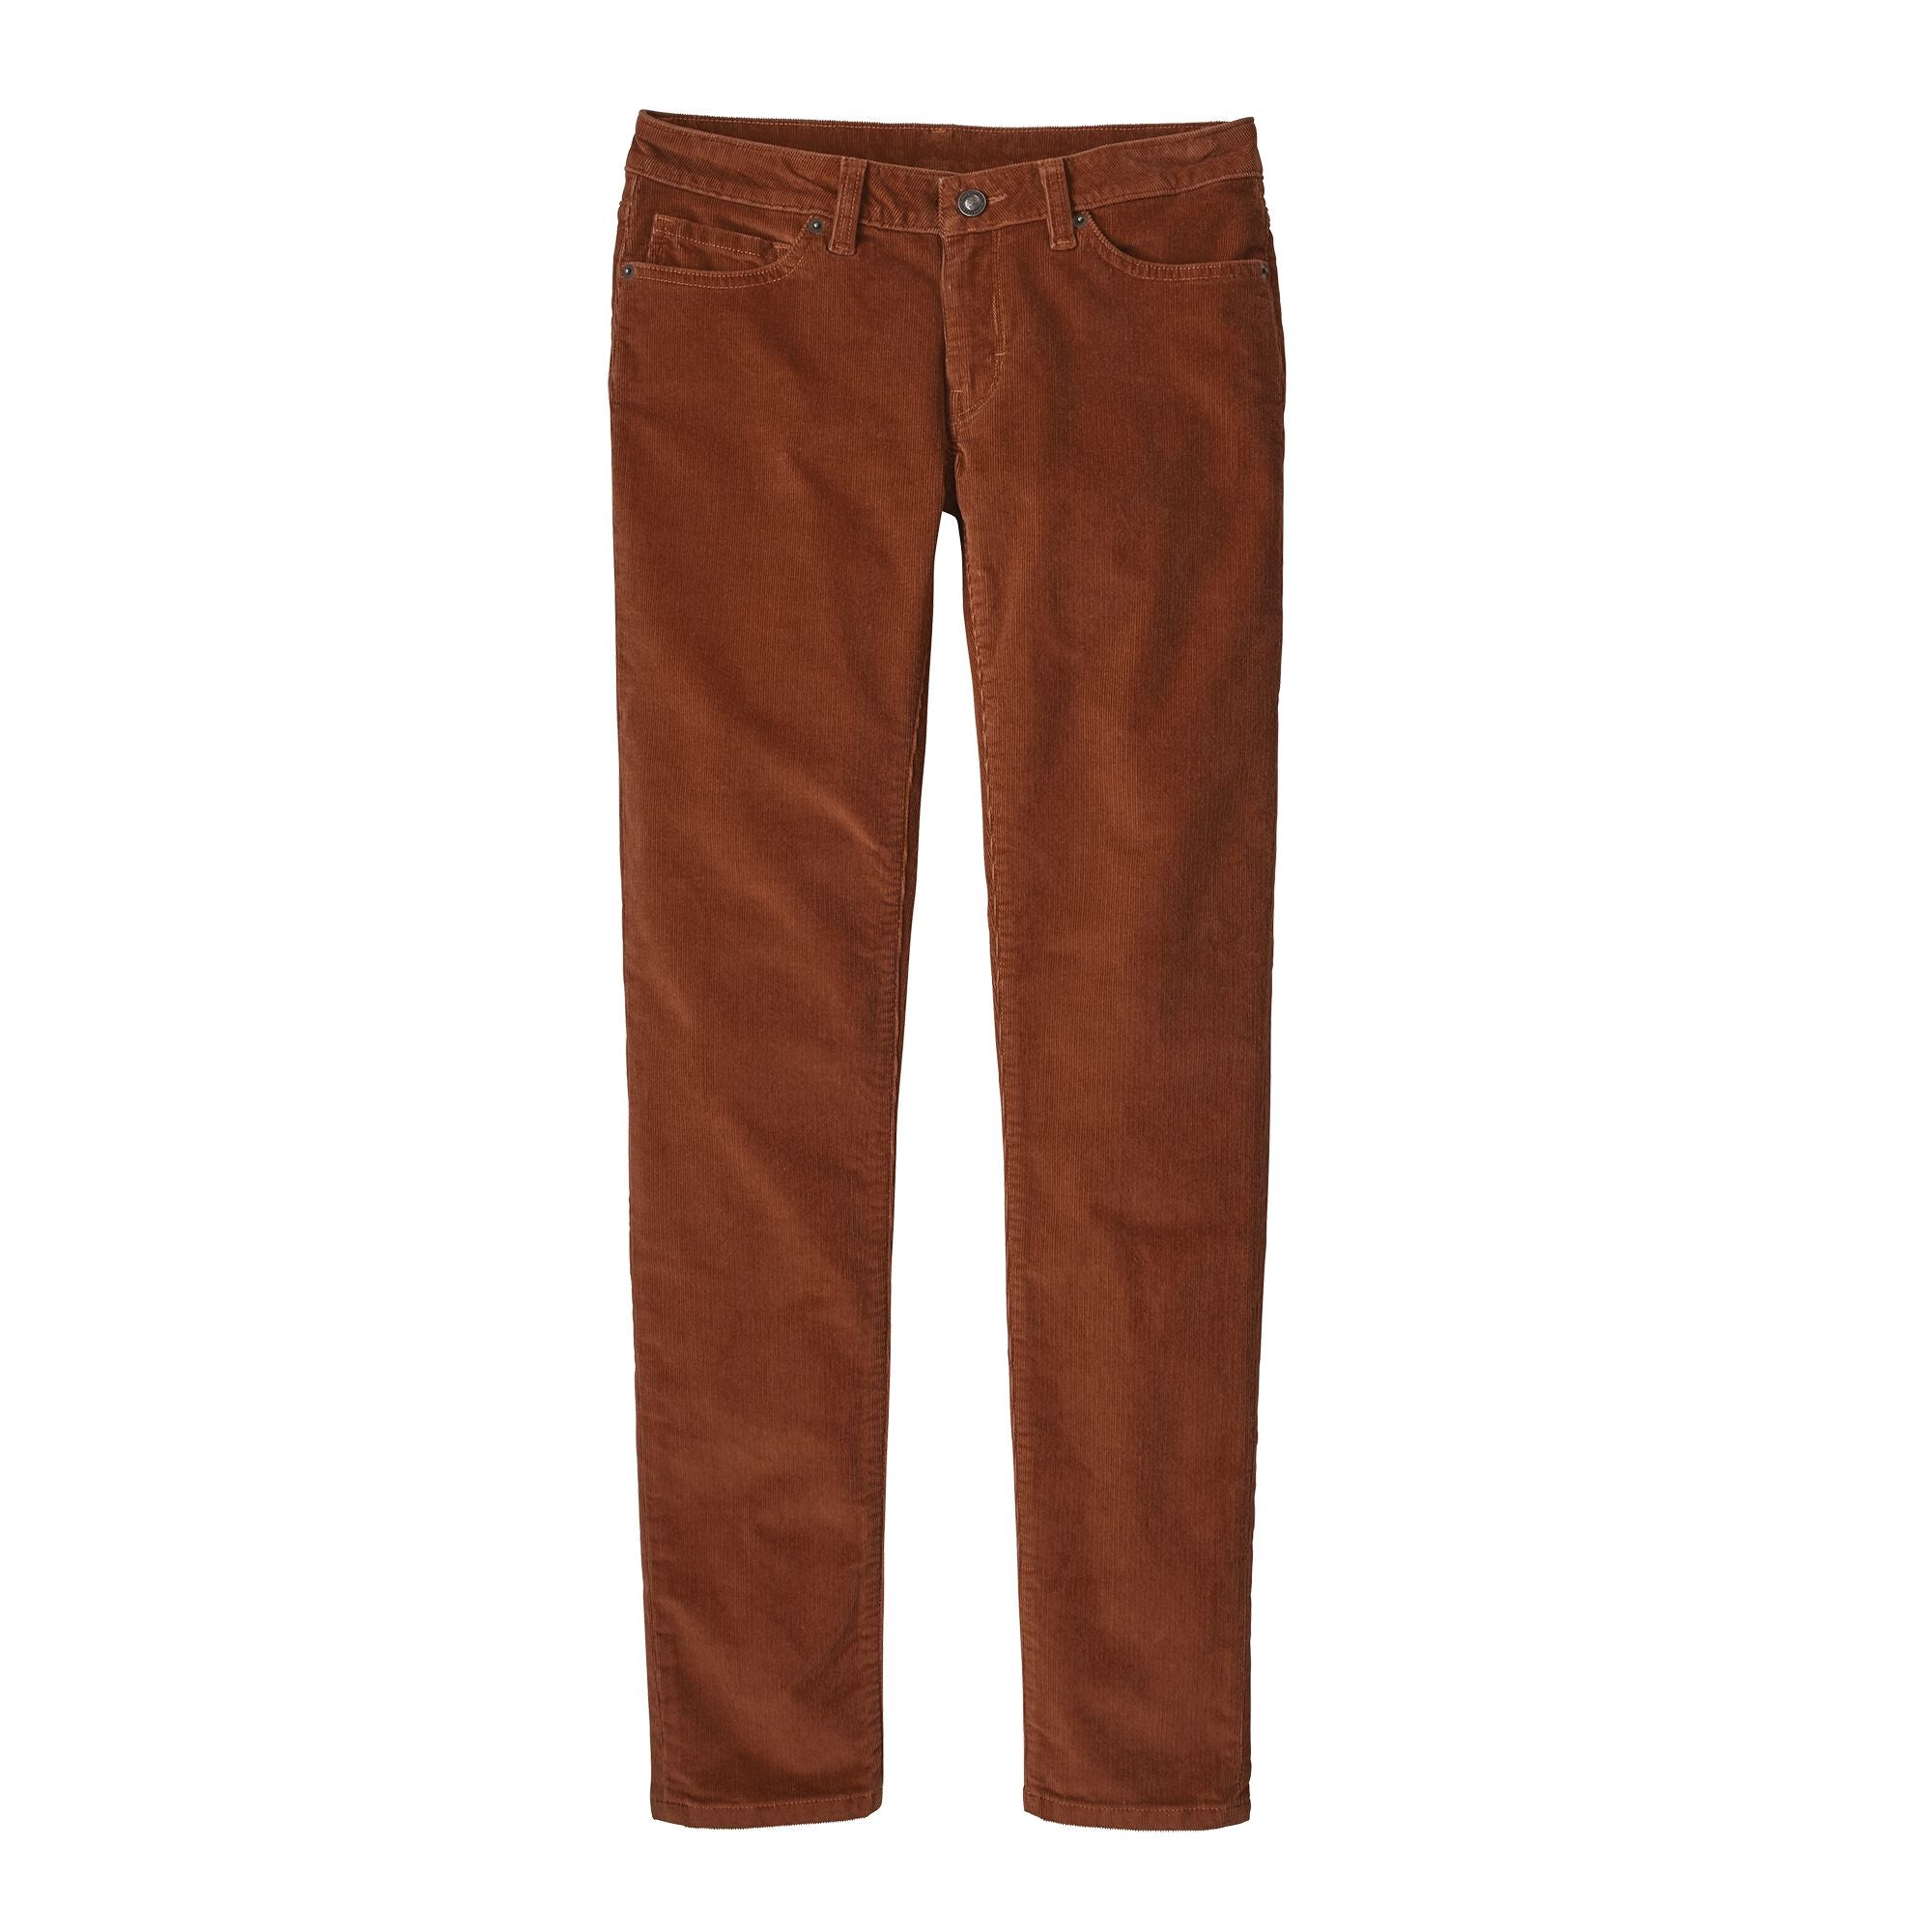 Pantalón Mujer Fitted Corduroy Pants Cafe Patagonia